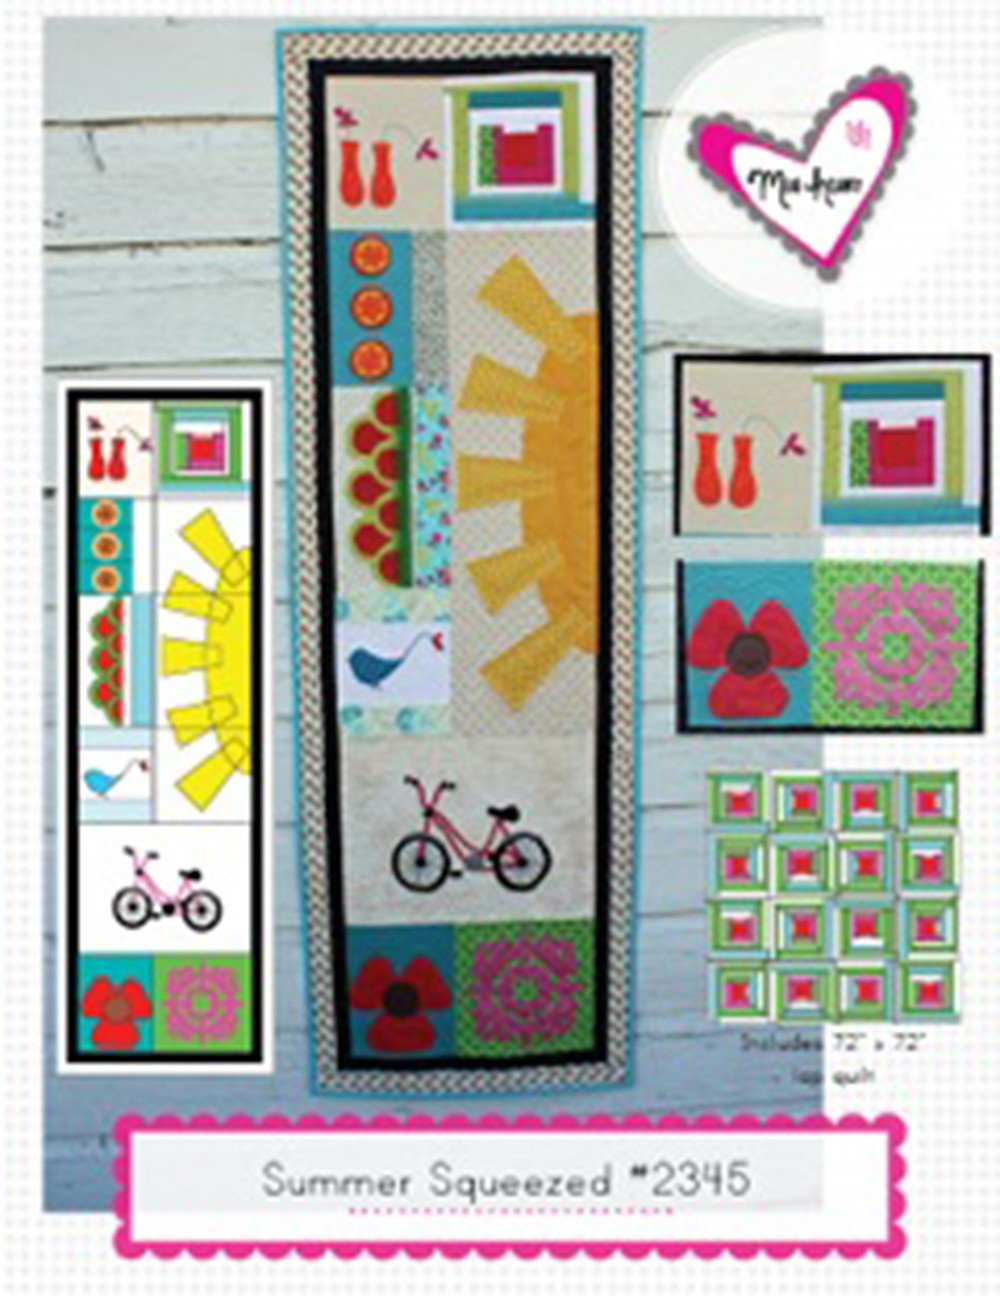 Summer Squeezed Quilt